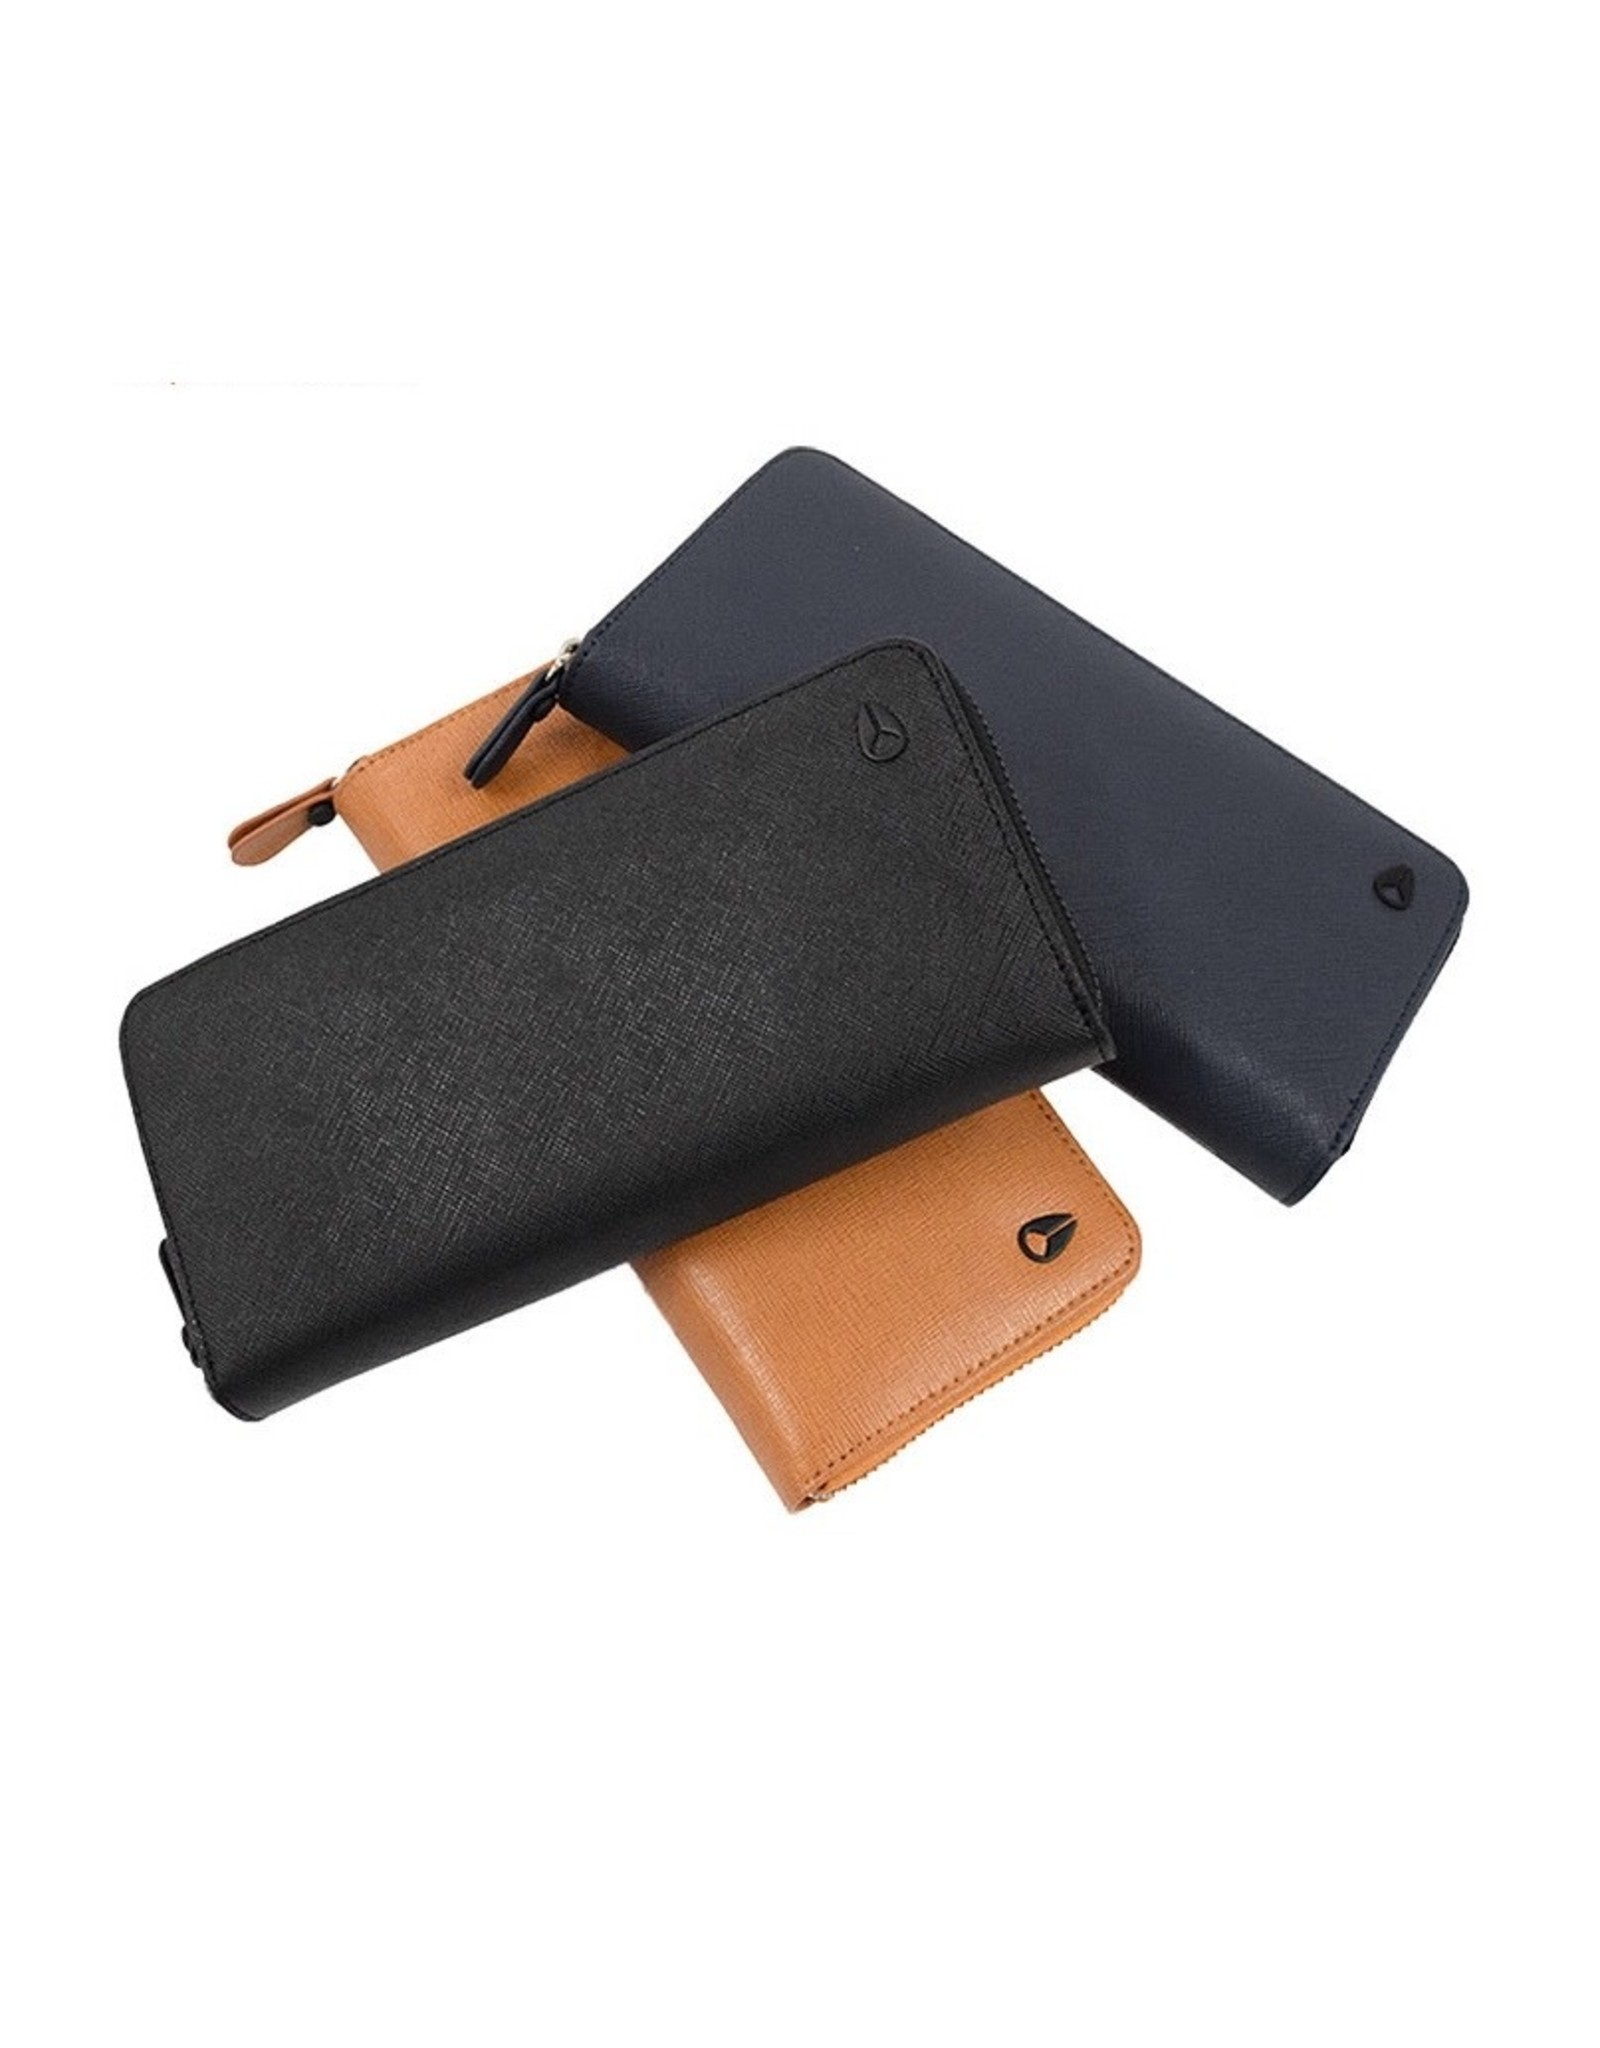 NIXON NIXON Leather Wallet